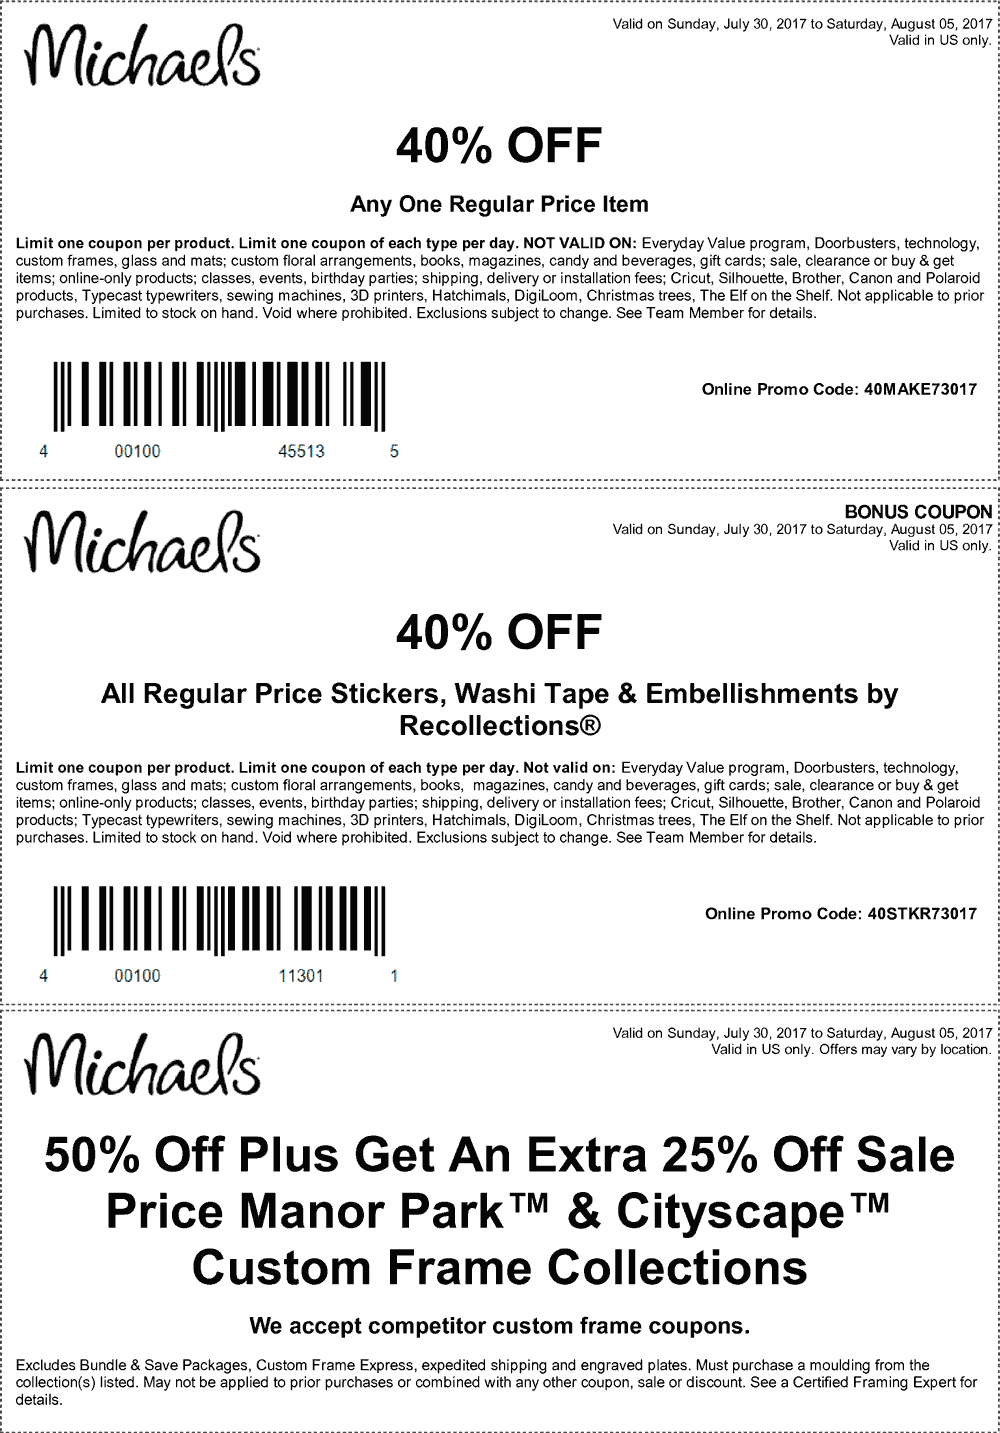 Michaels coupons - 40% off a single item & more at